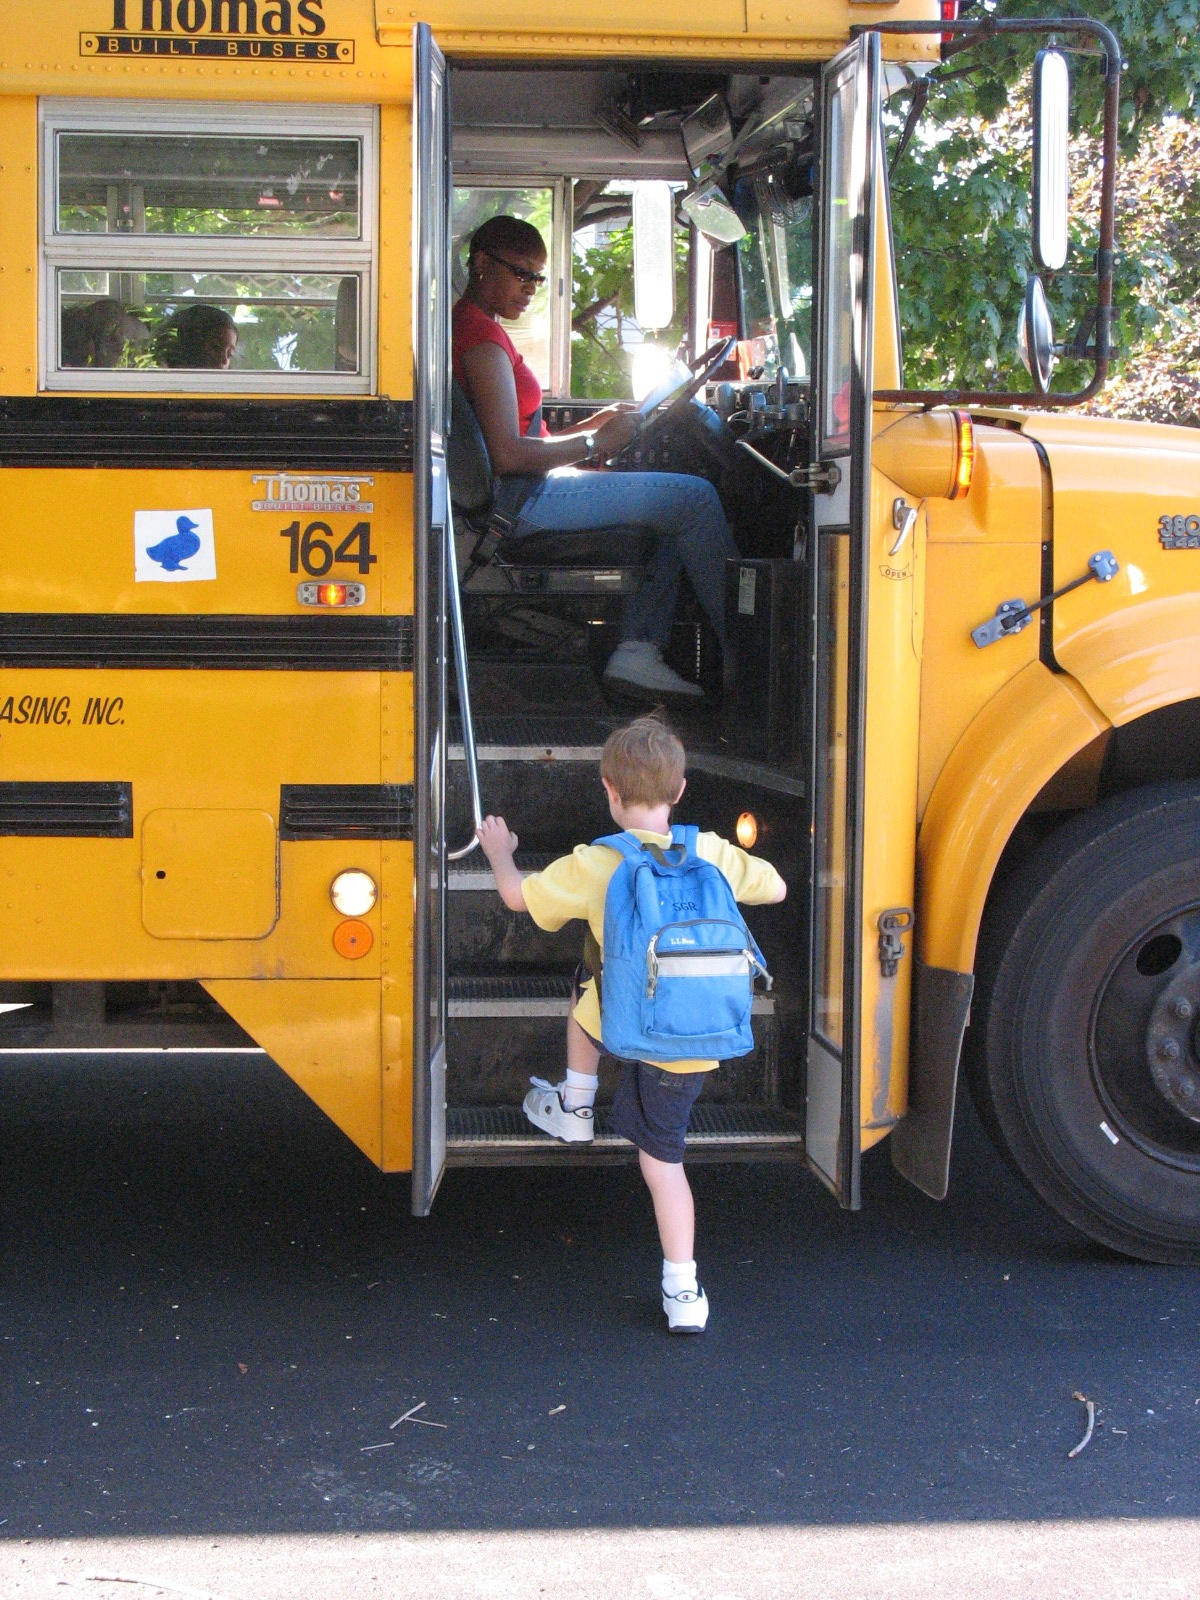 Every school bus must have GPS for safety